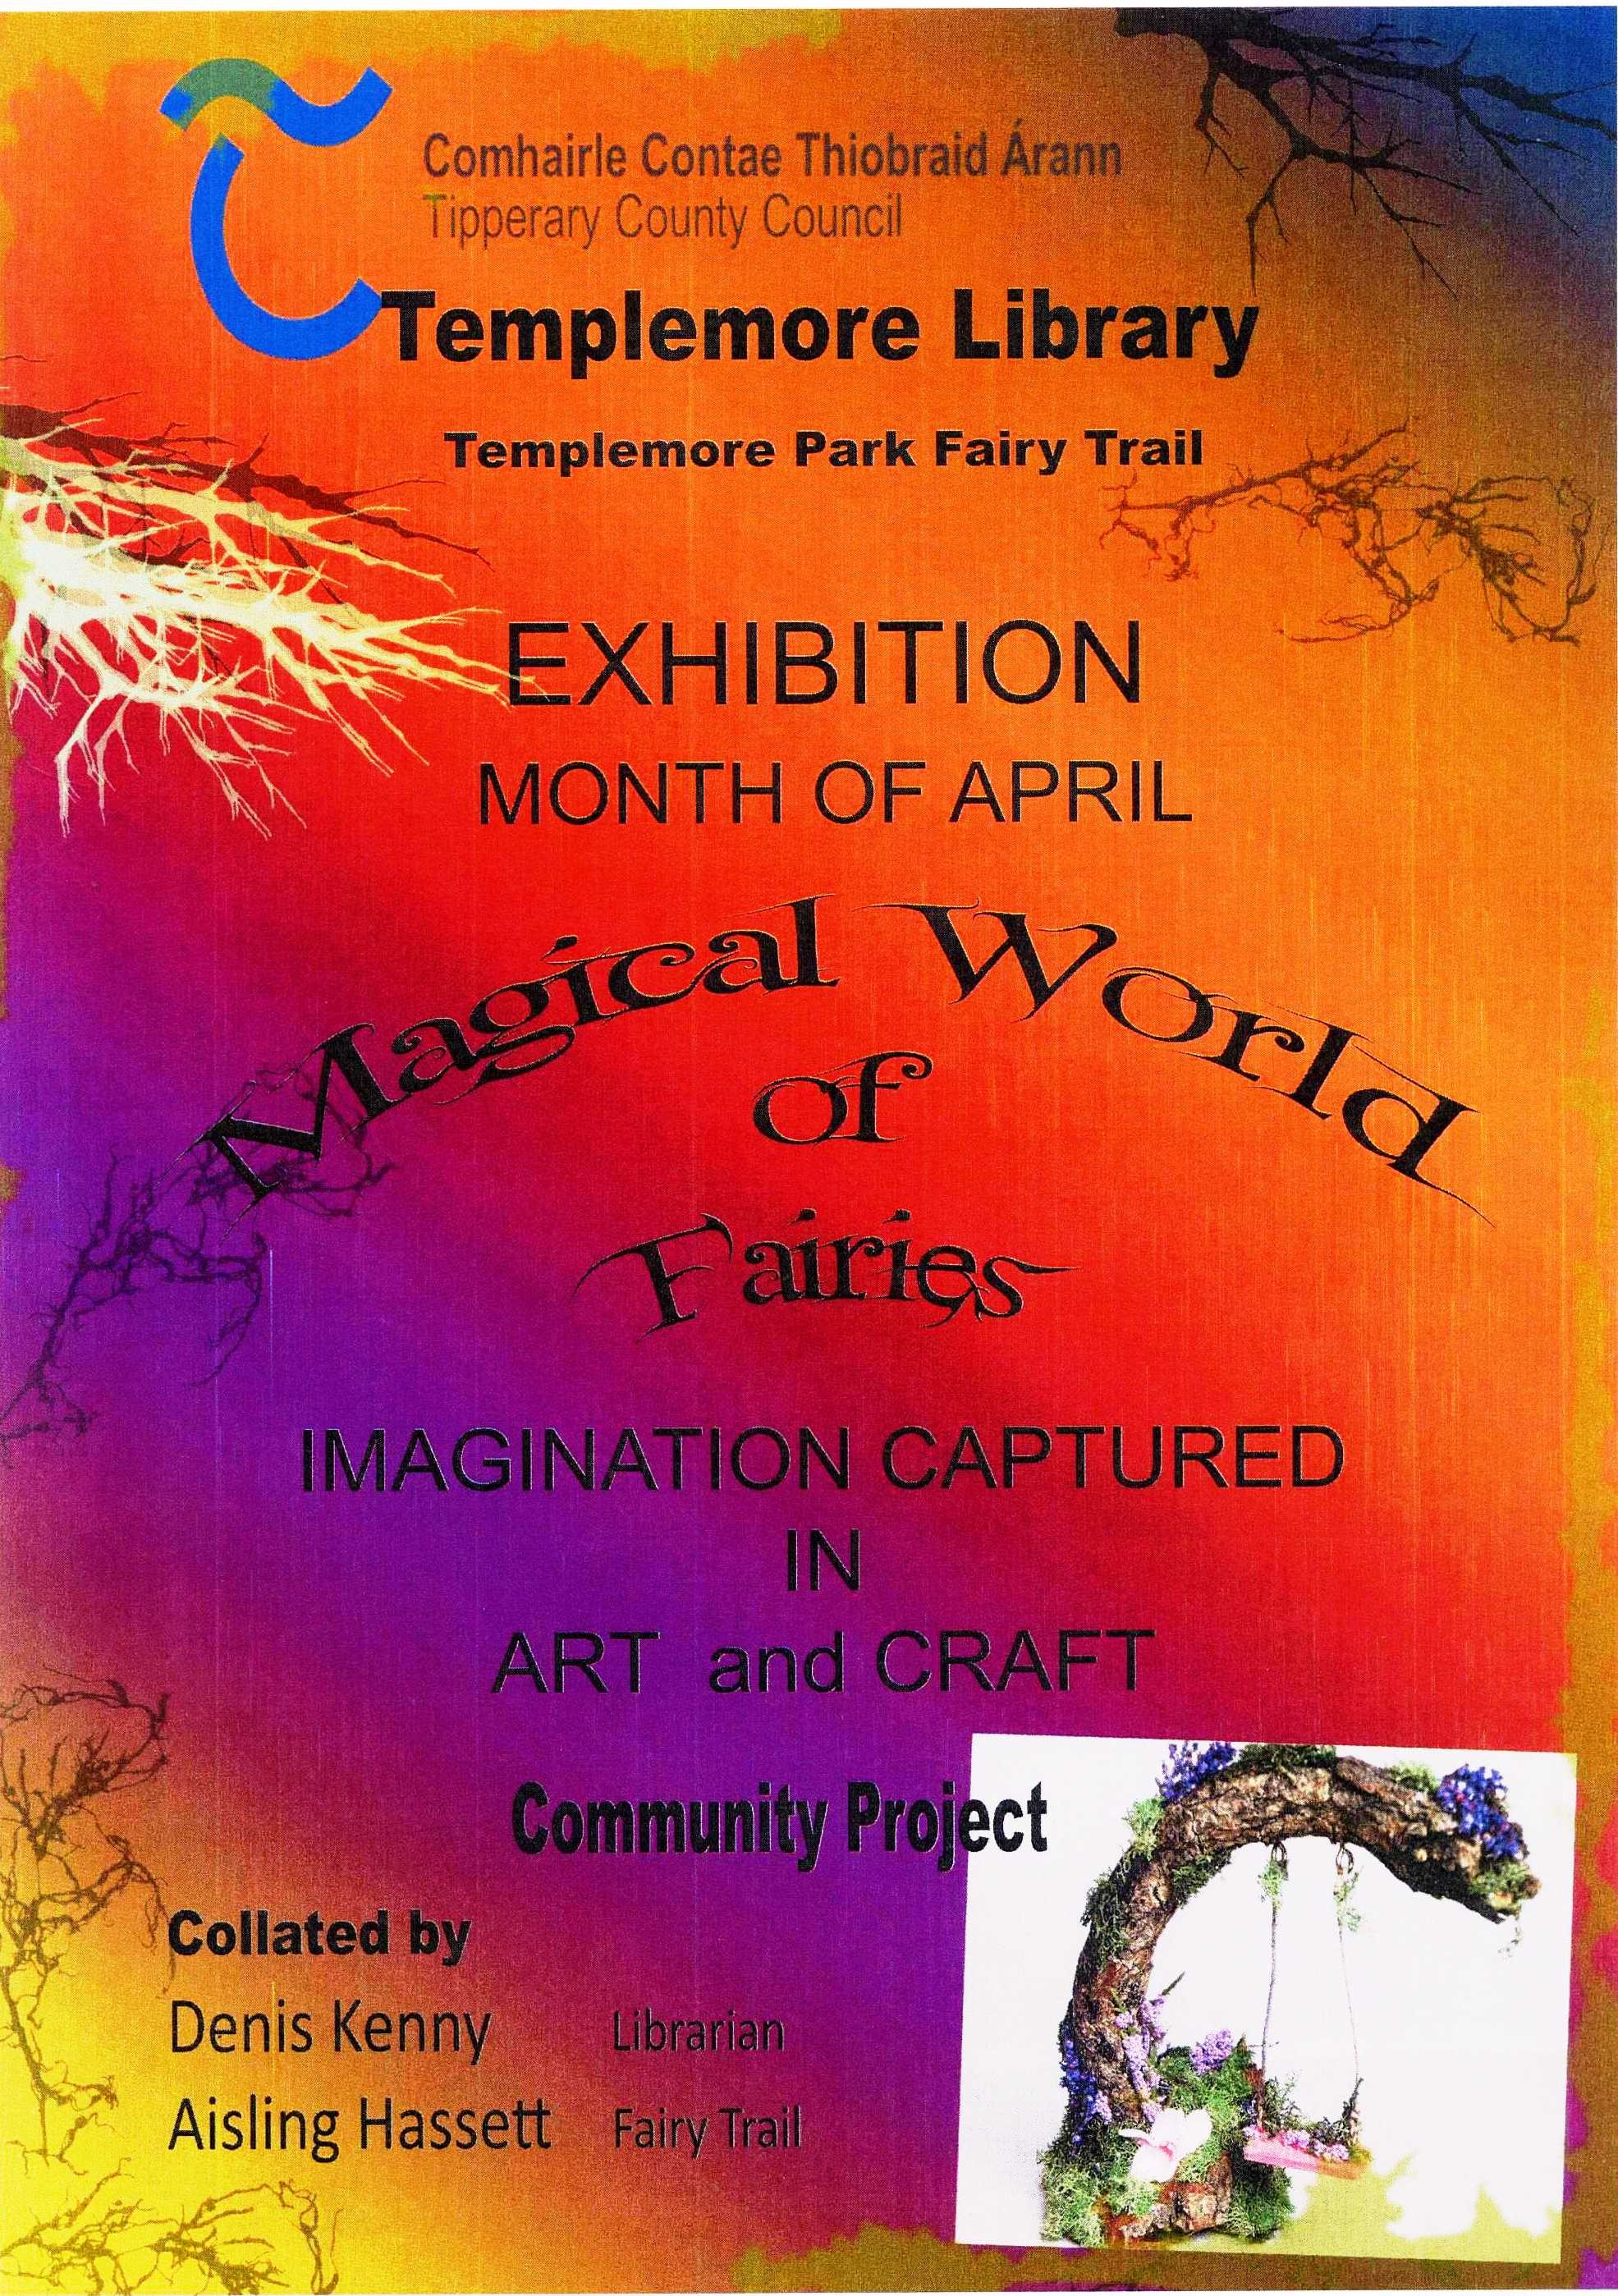 MAGICAL WORLD OF FAIRIES: TEMPLEMORE LIBRARY EXHIBITION